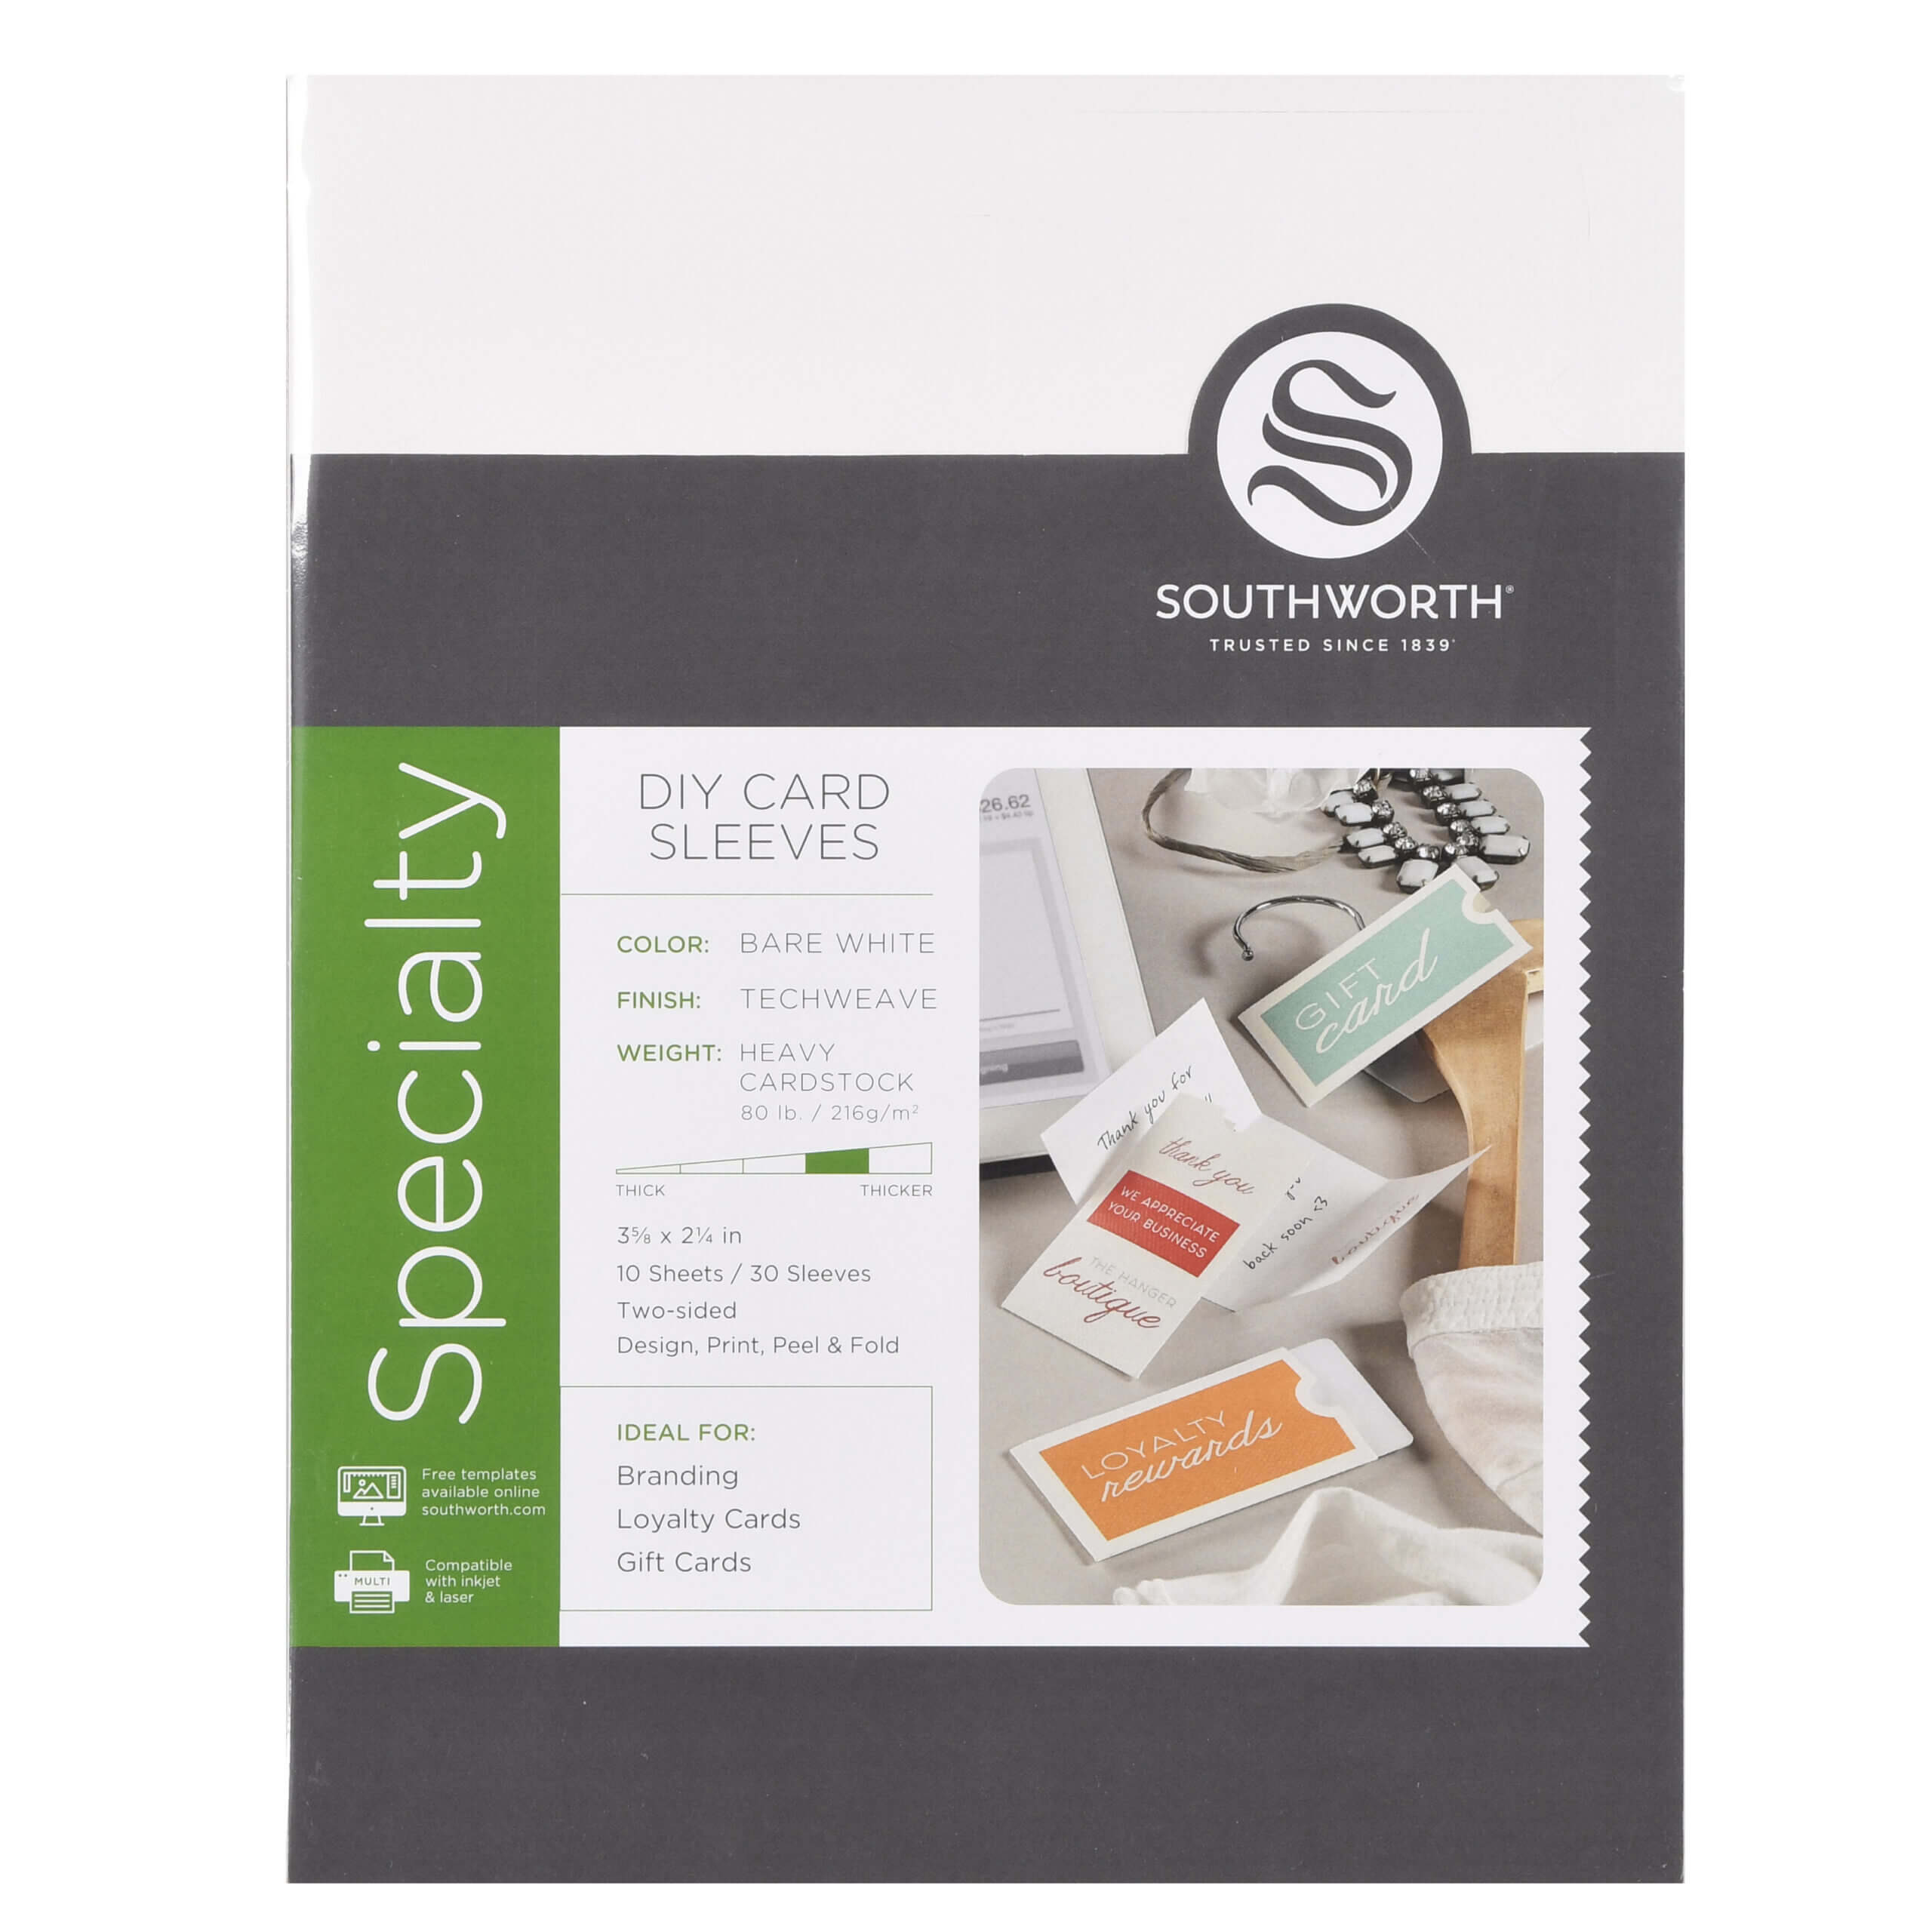 """Southworth Diy Card Sleeves, 3.6"""" X 2.25"""", 80 Lb., Techweave Finish, Bare  White, 30 Ct. – Walmart With Southworth Business Card Template"""